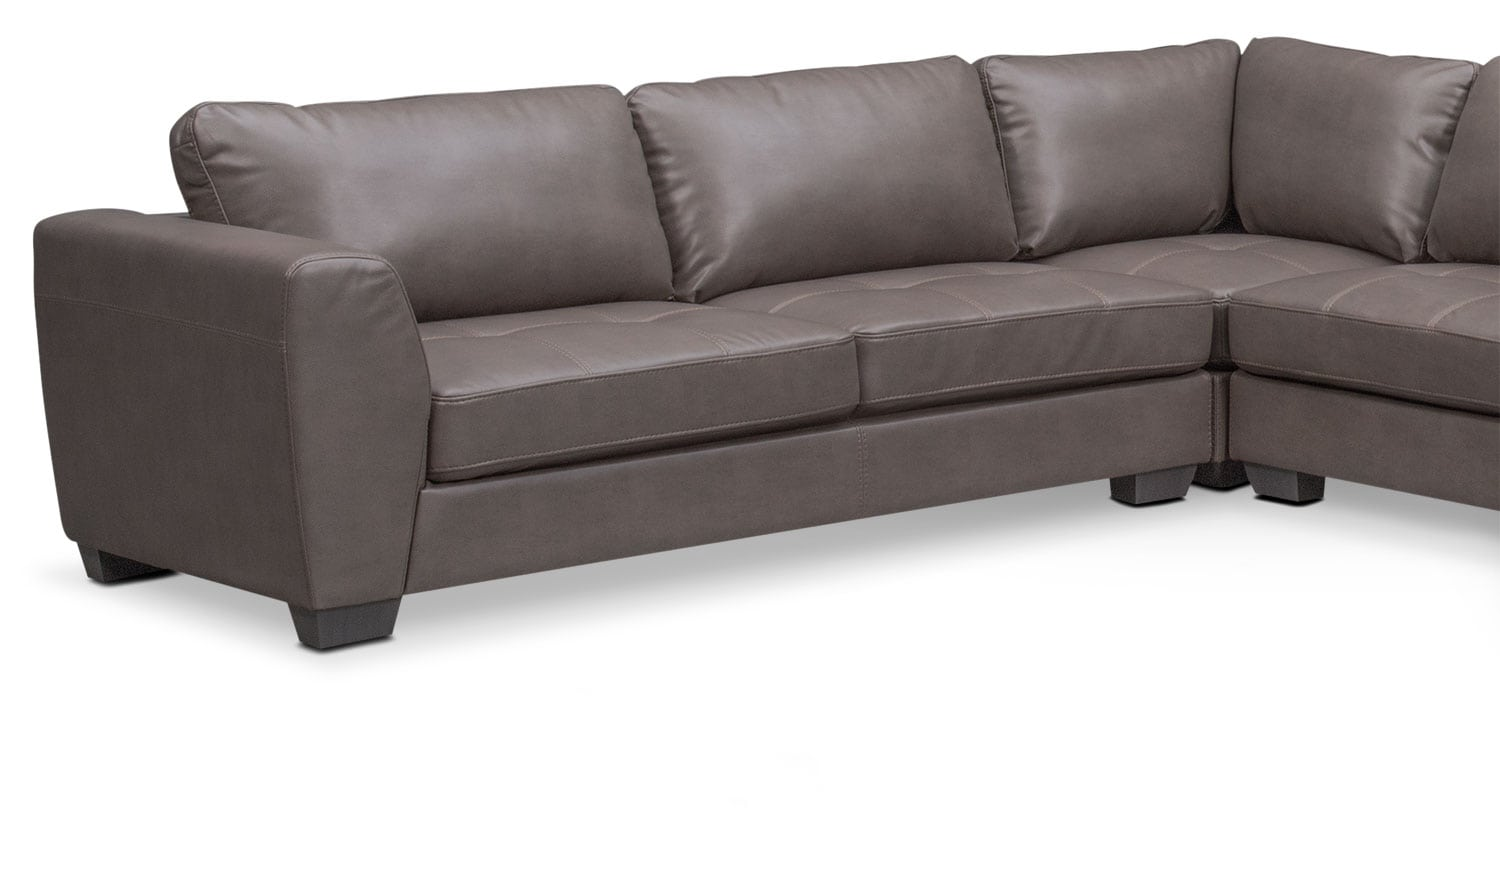 Santana 4 piece sectional with right facing chaise gray for American signature furniture commercial chaise